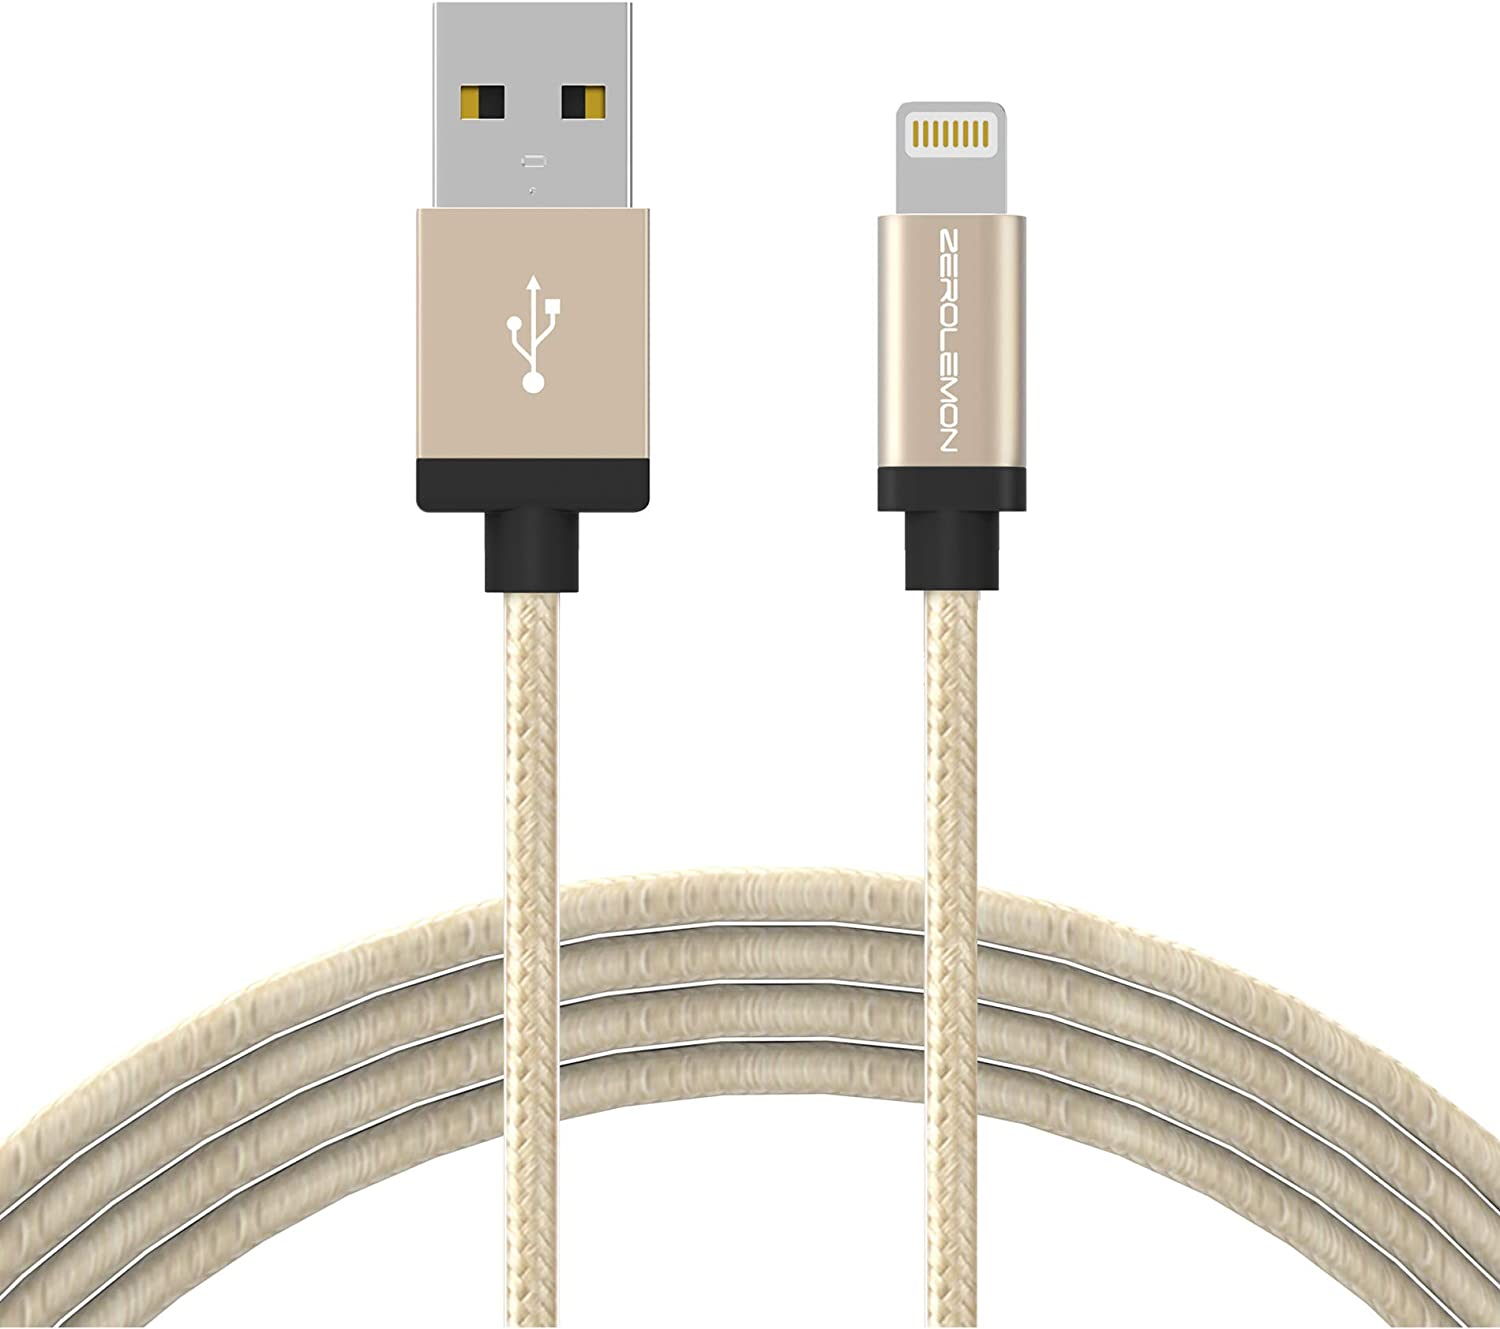 iPhone Charger [Apple MFi Certified], ZeroLemon Lightning to USB Rugged Nylon Cable 10 Feet/3 Meter + Aluminum Cap for iPhone 11/11 Pro/11 Pro Max/XS Max/XR, 10.2'' iPad 2019 and More - Rugged Gold